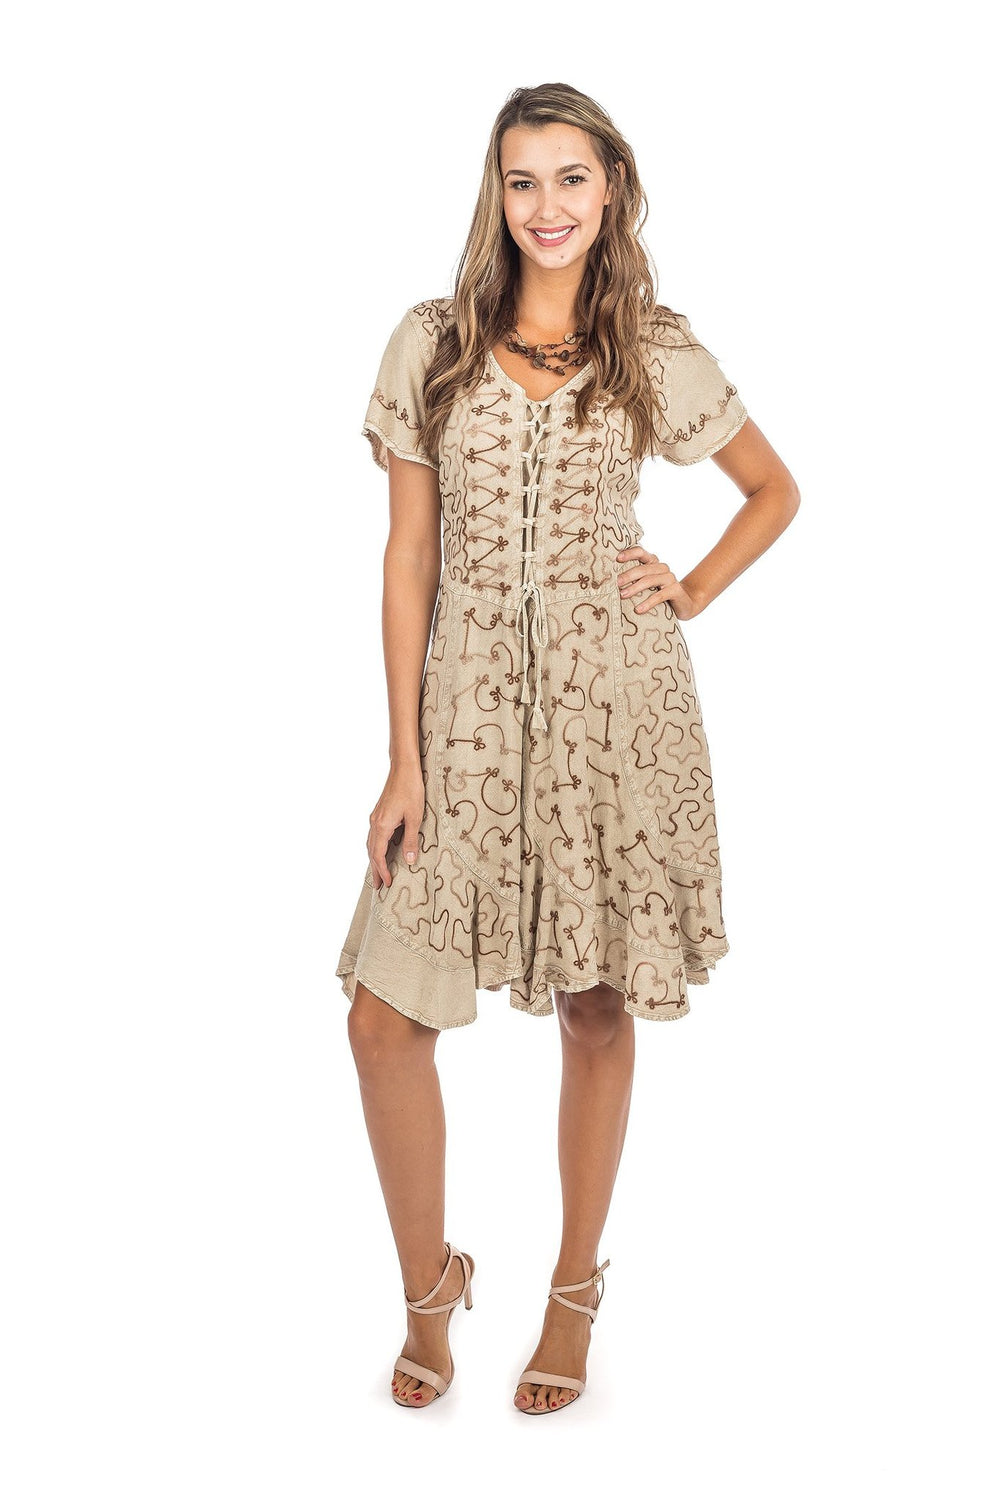 LACE-UP MIDI DRESS-SHORT SLEEVES BEIGE